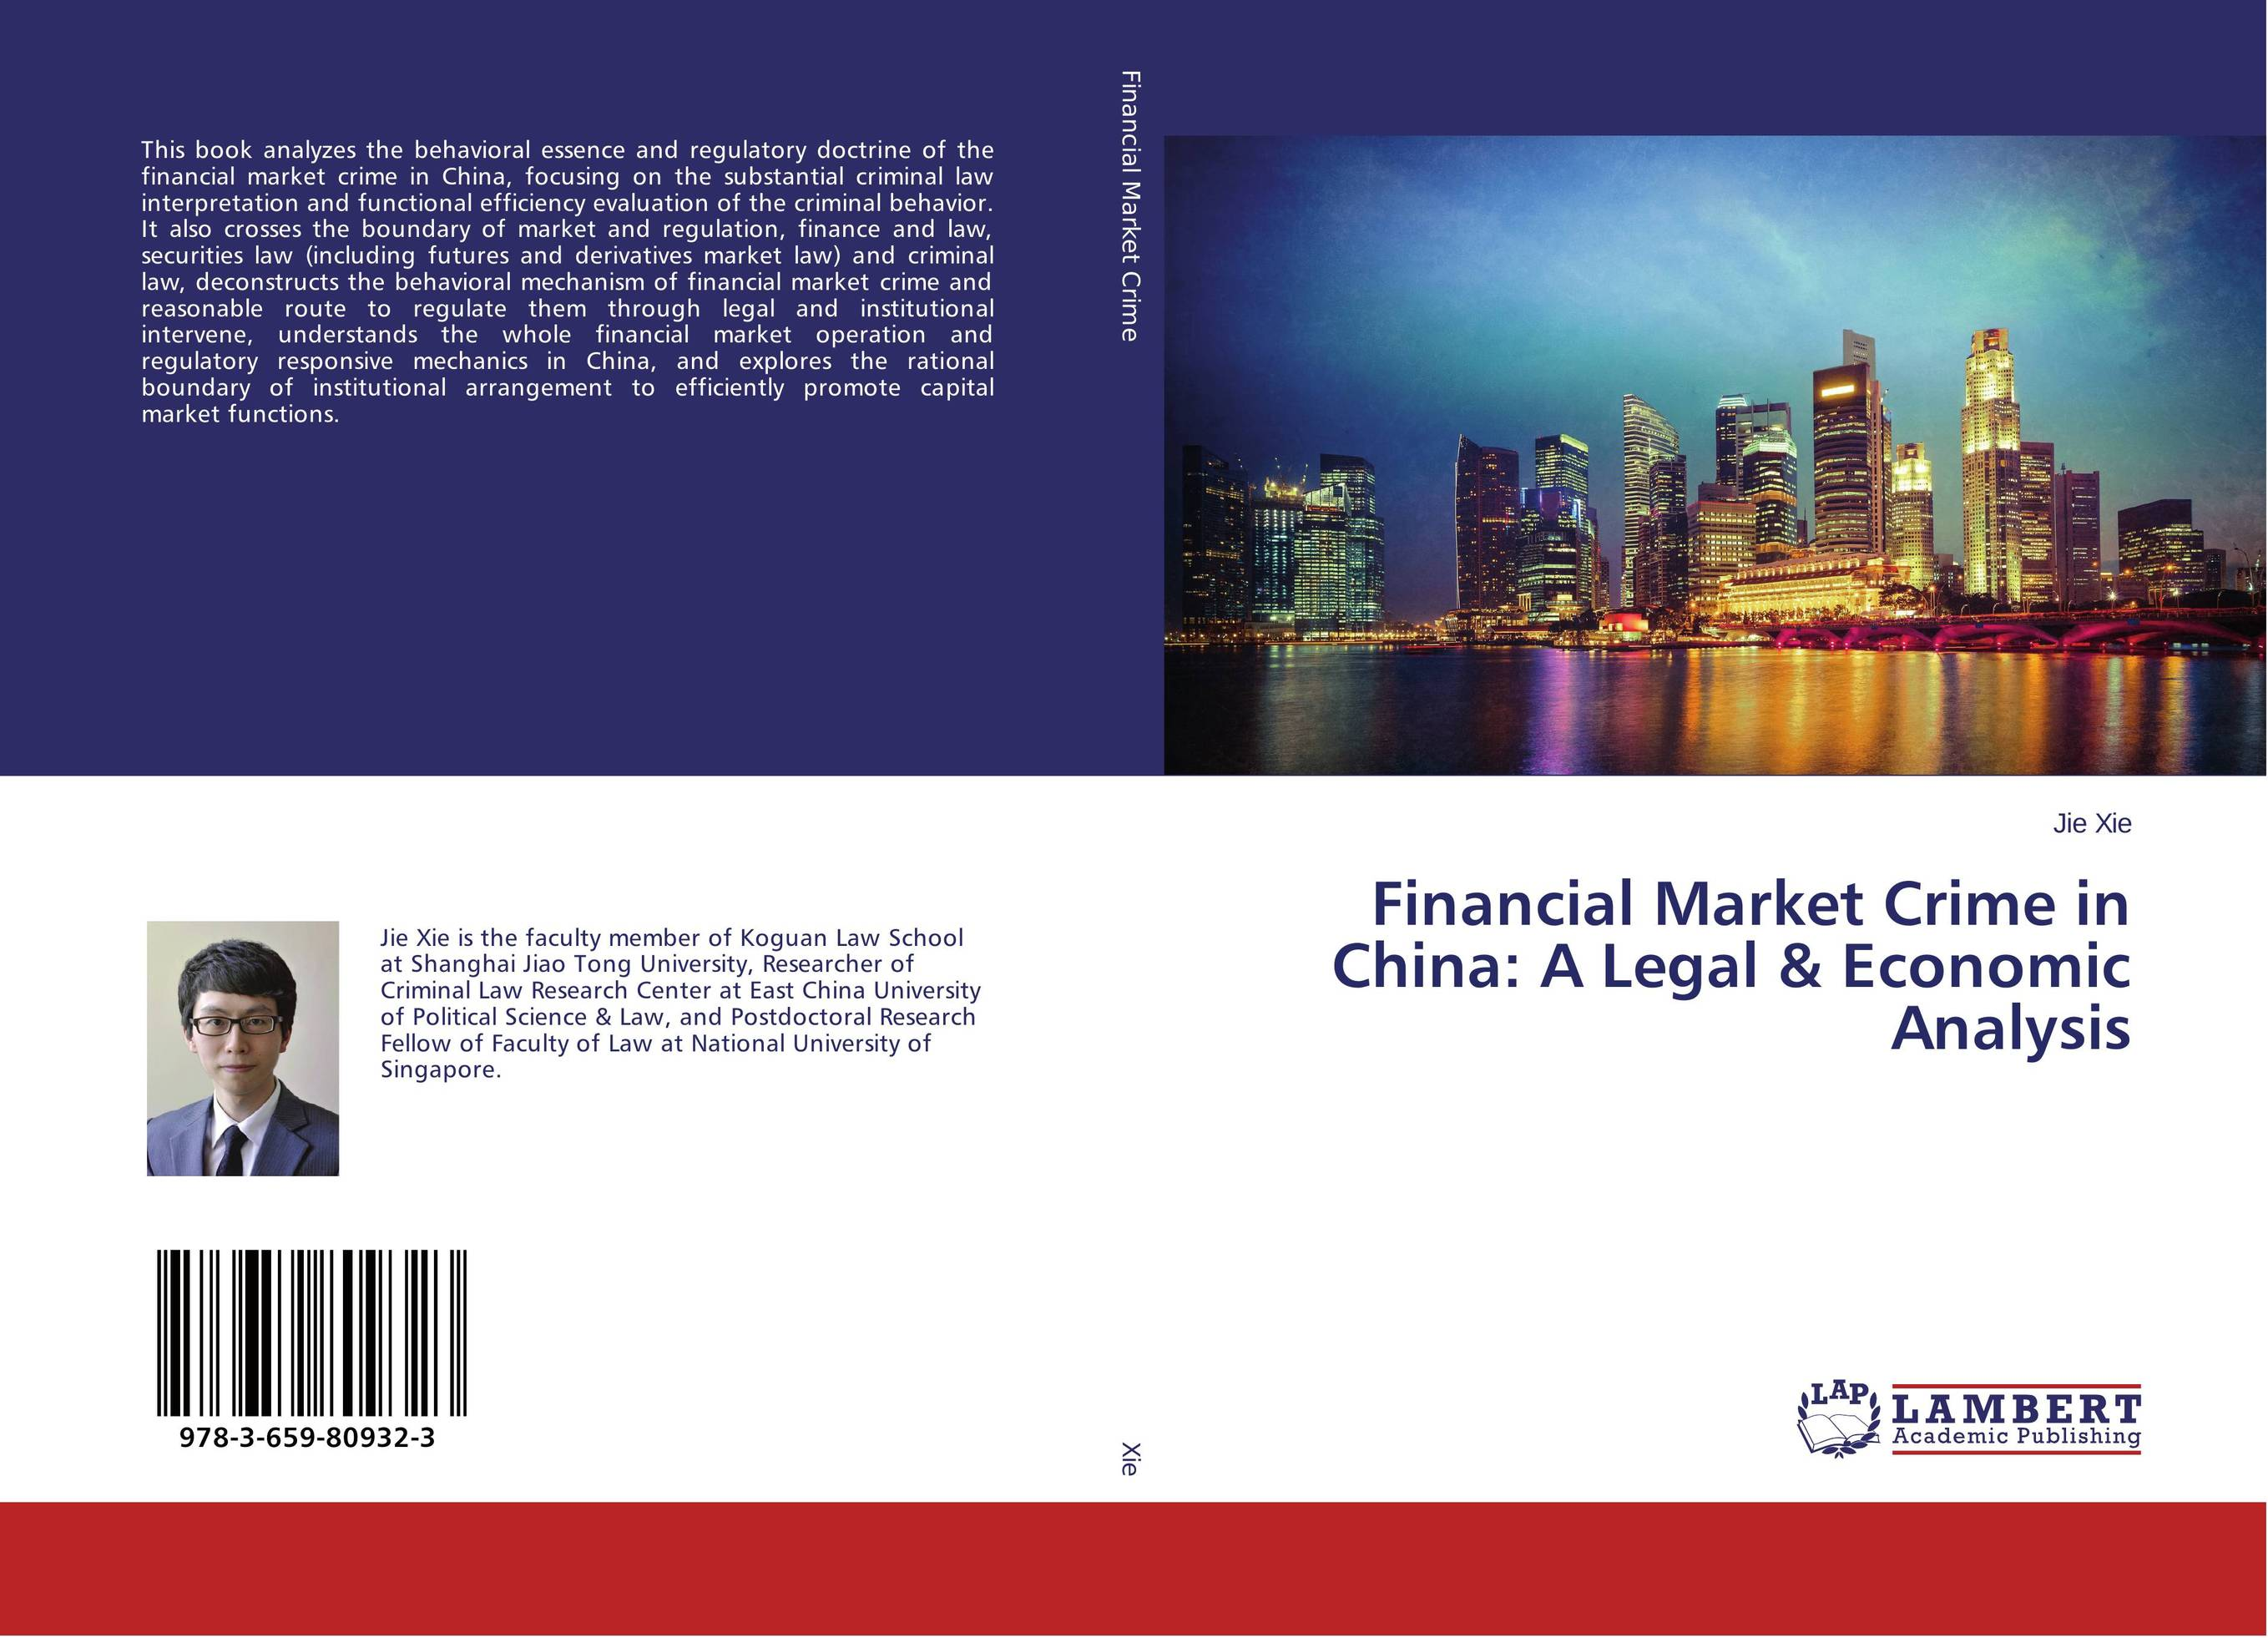 Financial Market Crime in China: A Legal & Economic Analysis the role of legal feeling in the criminal legislation